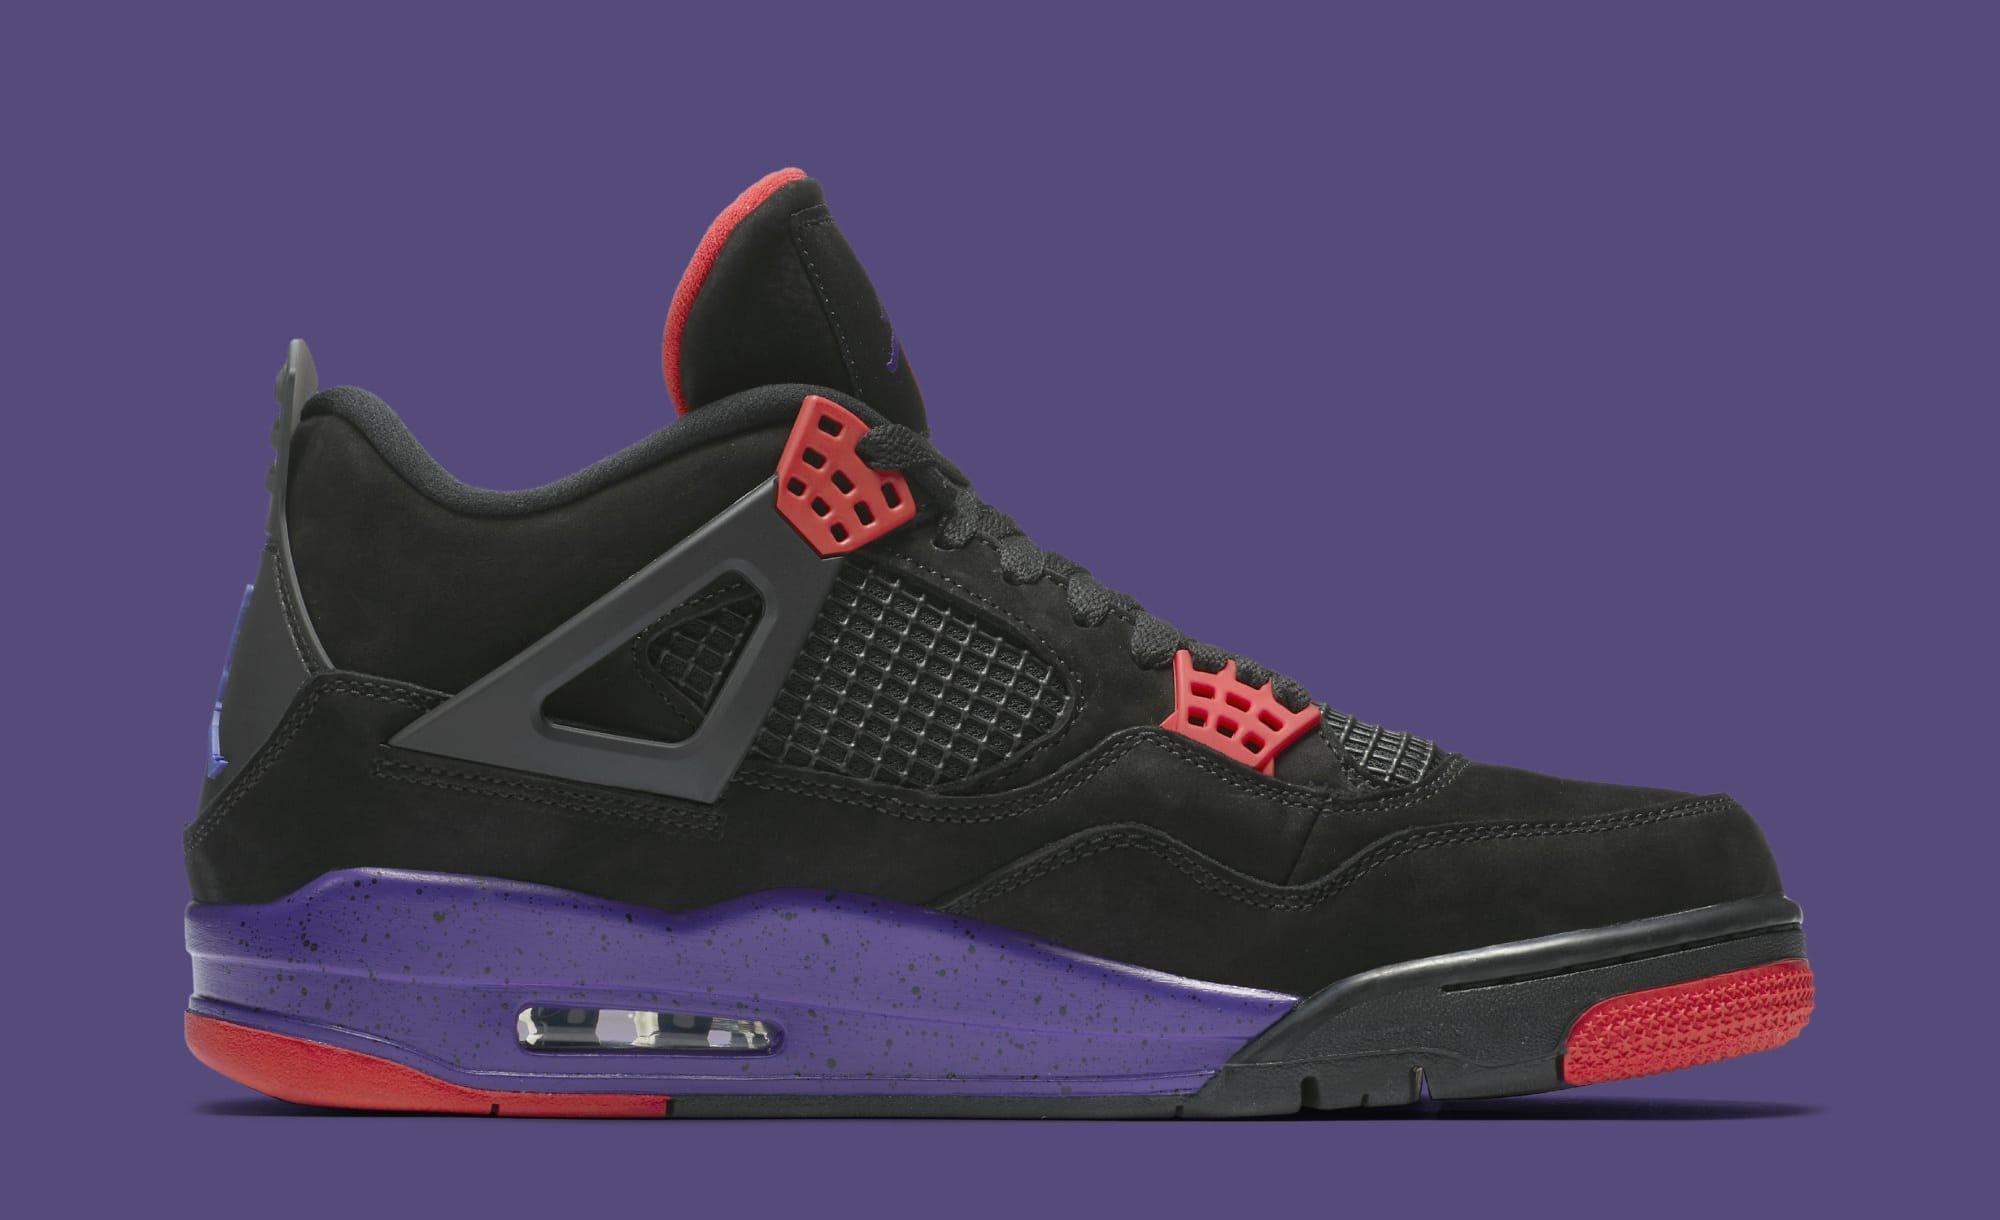 d3e9dfa77986d4 ... online for sale Image via Nike Air Jordan 4 Retro Raptors AQ3816-056  (Medial ...